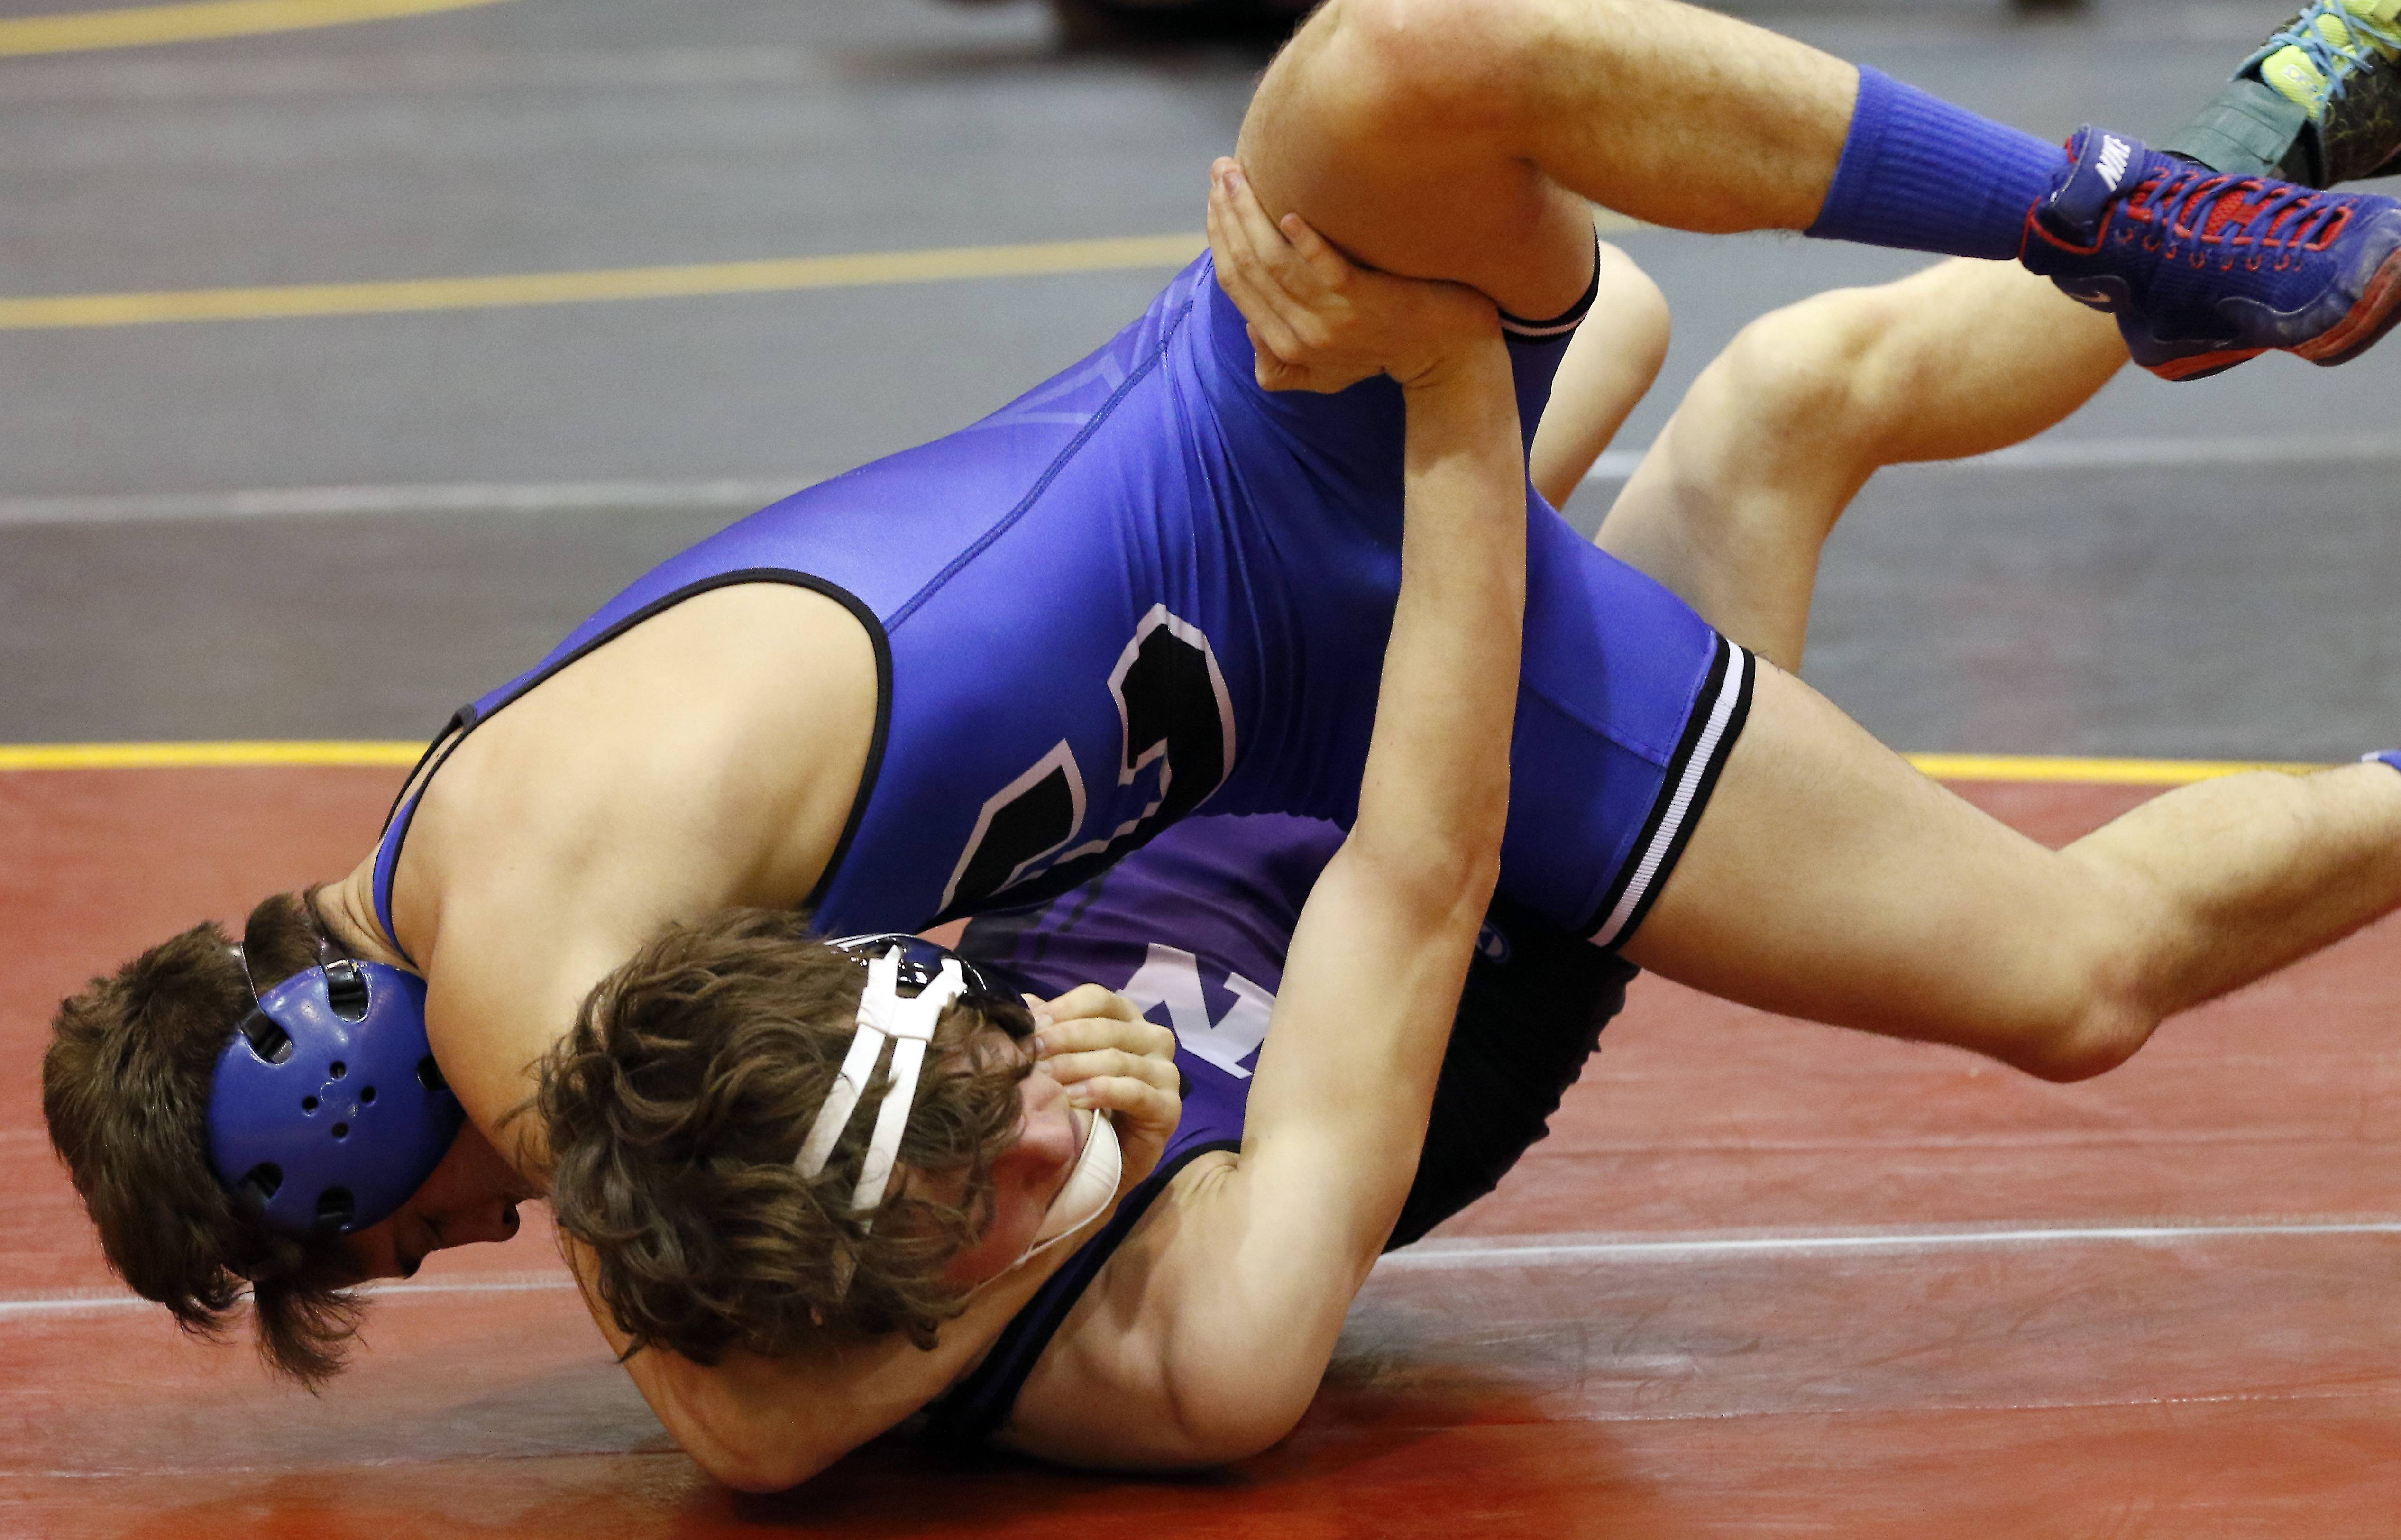 Burlington Central's Austin Macias, top, wrestles Downers Grove North's Bert Baker at 126 pounds Saturday during the Batavia Invite wrestling meet.